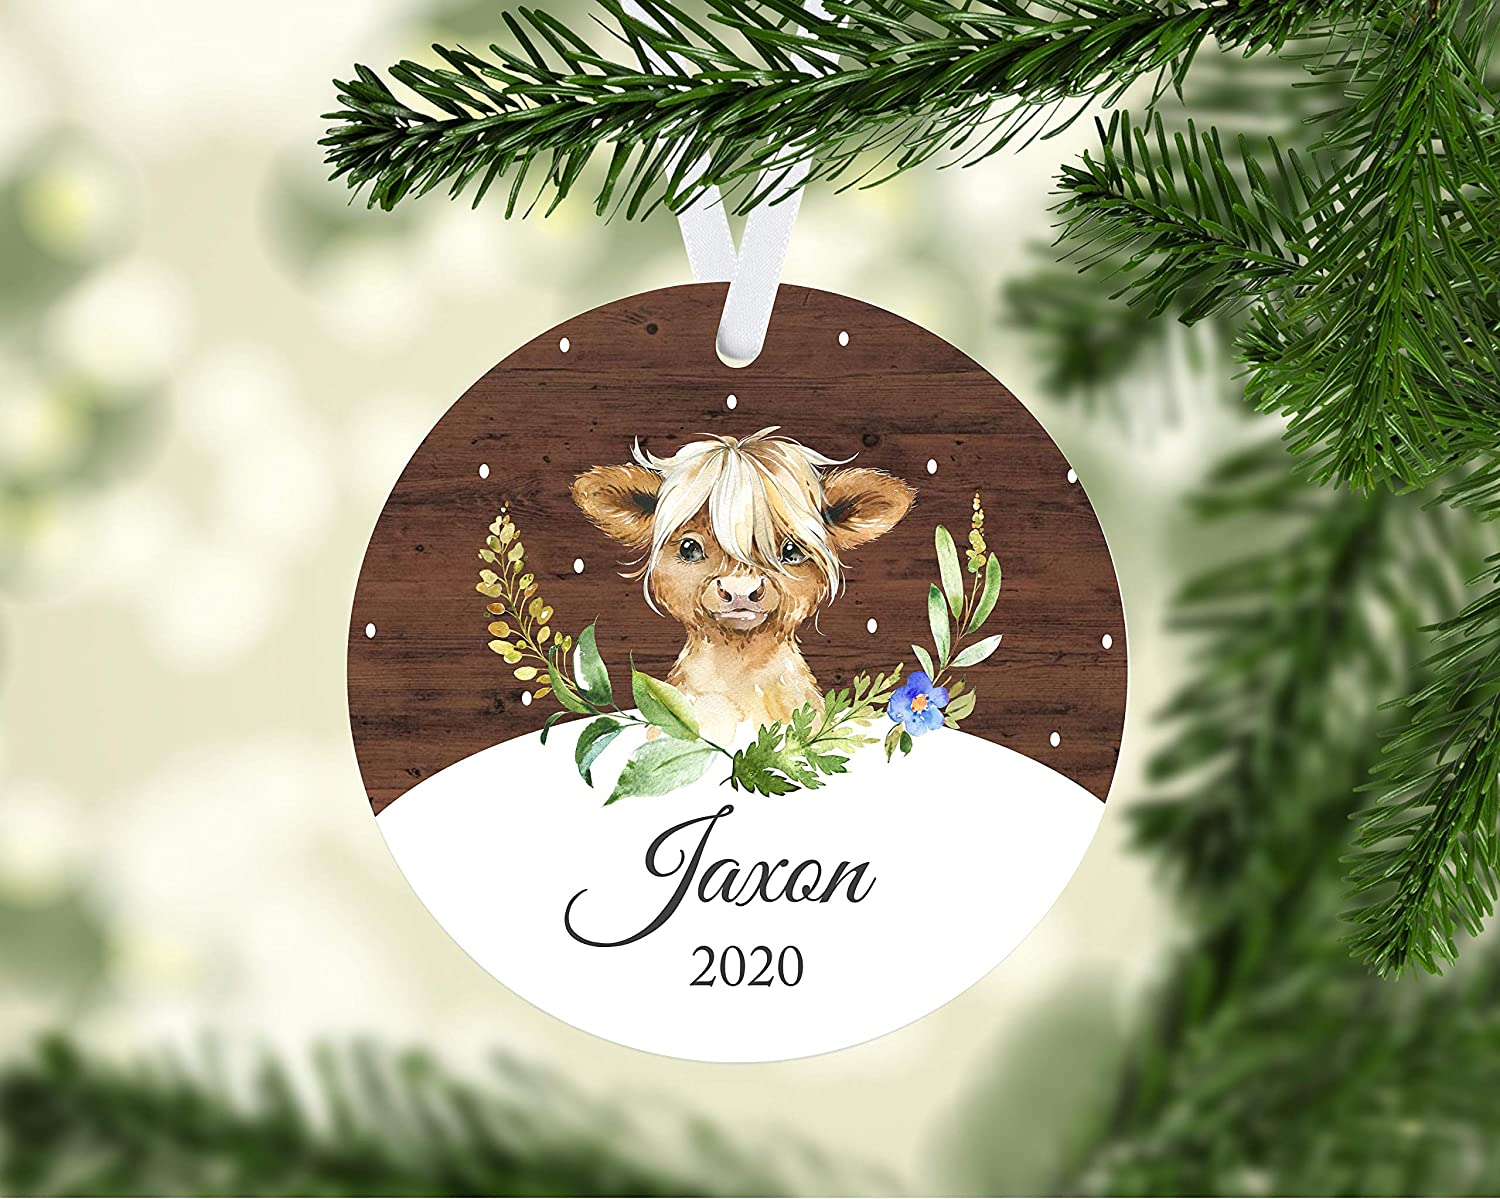 EricauBird Christmas Decoration-Baby Cow Ornament, 2020 Baby Ornament, Highland Cow Ornament, Baby Gift, Gift for Baby boy Annual Ornament, Keepsake Ornament, Christmas Ornament